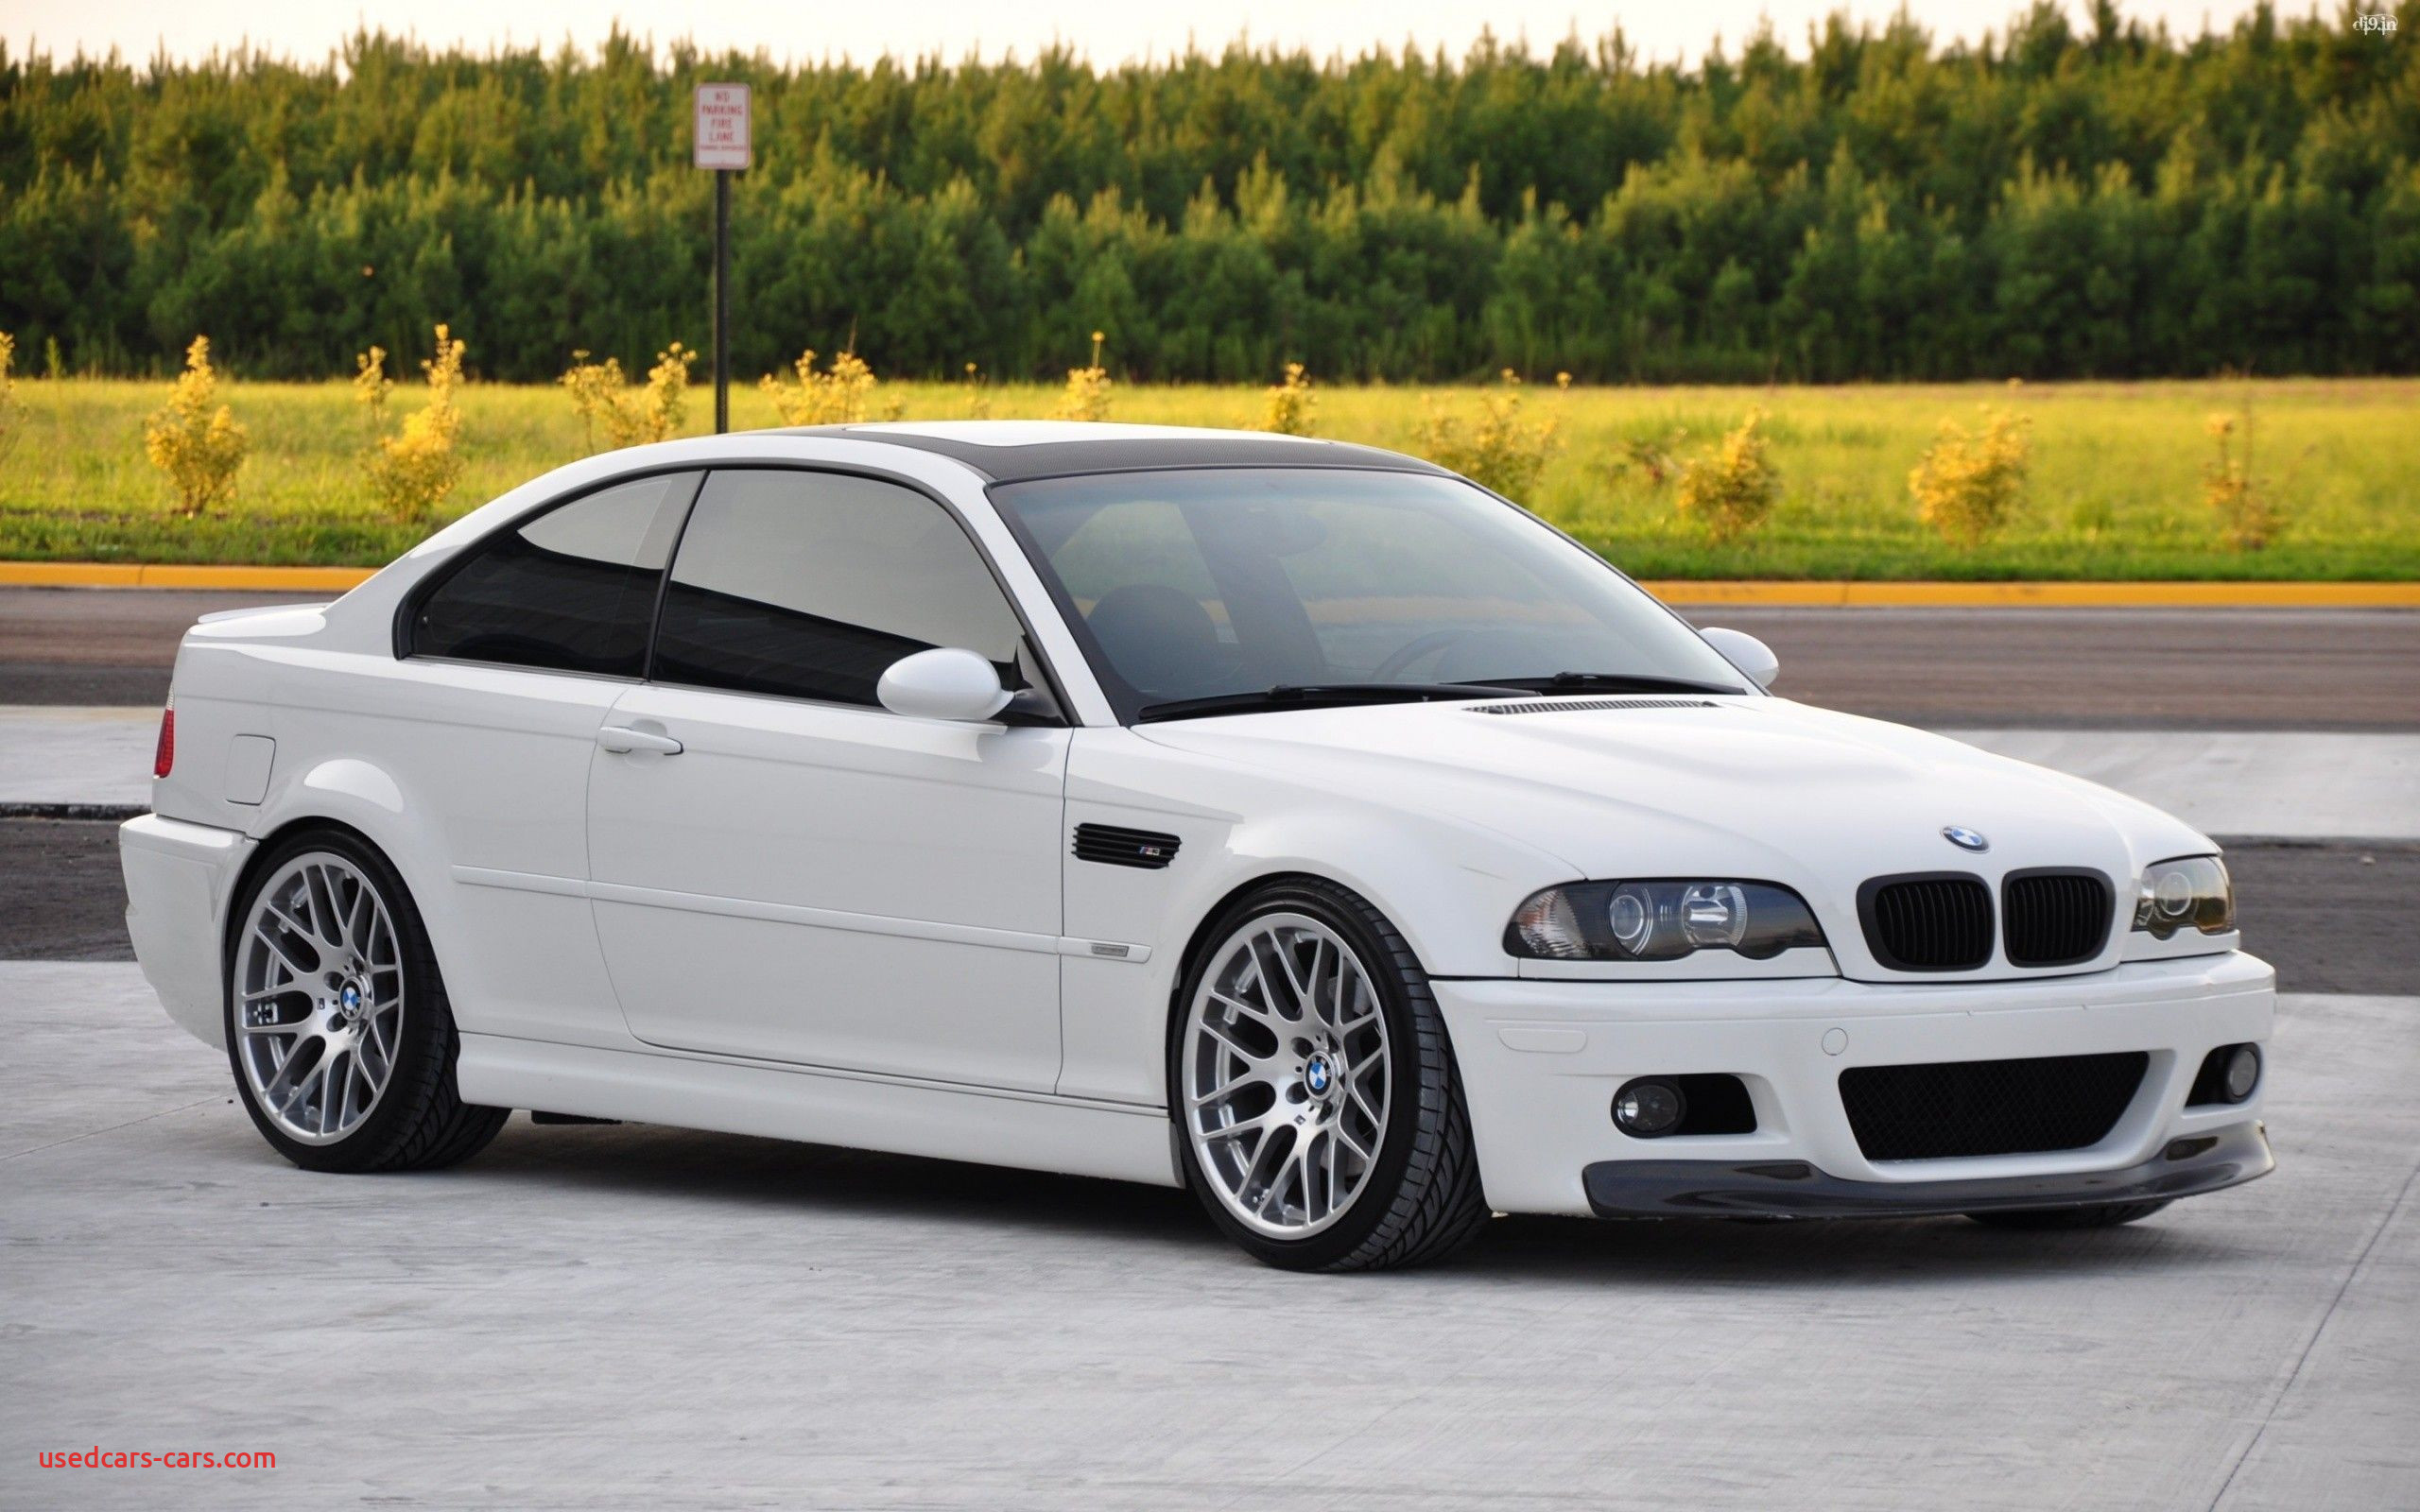 Bmw M3 Csl E46 Inspirational Used Bmw E46 M3 Csl White